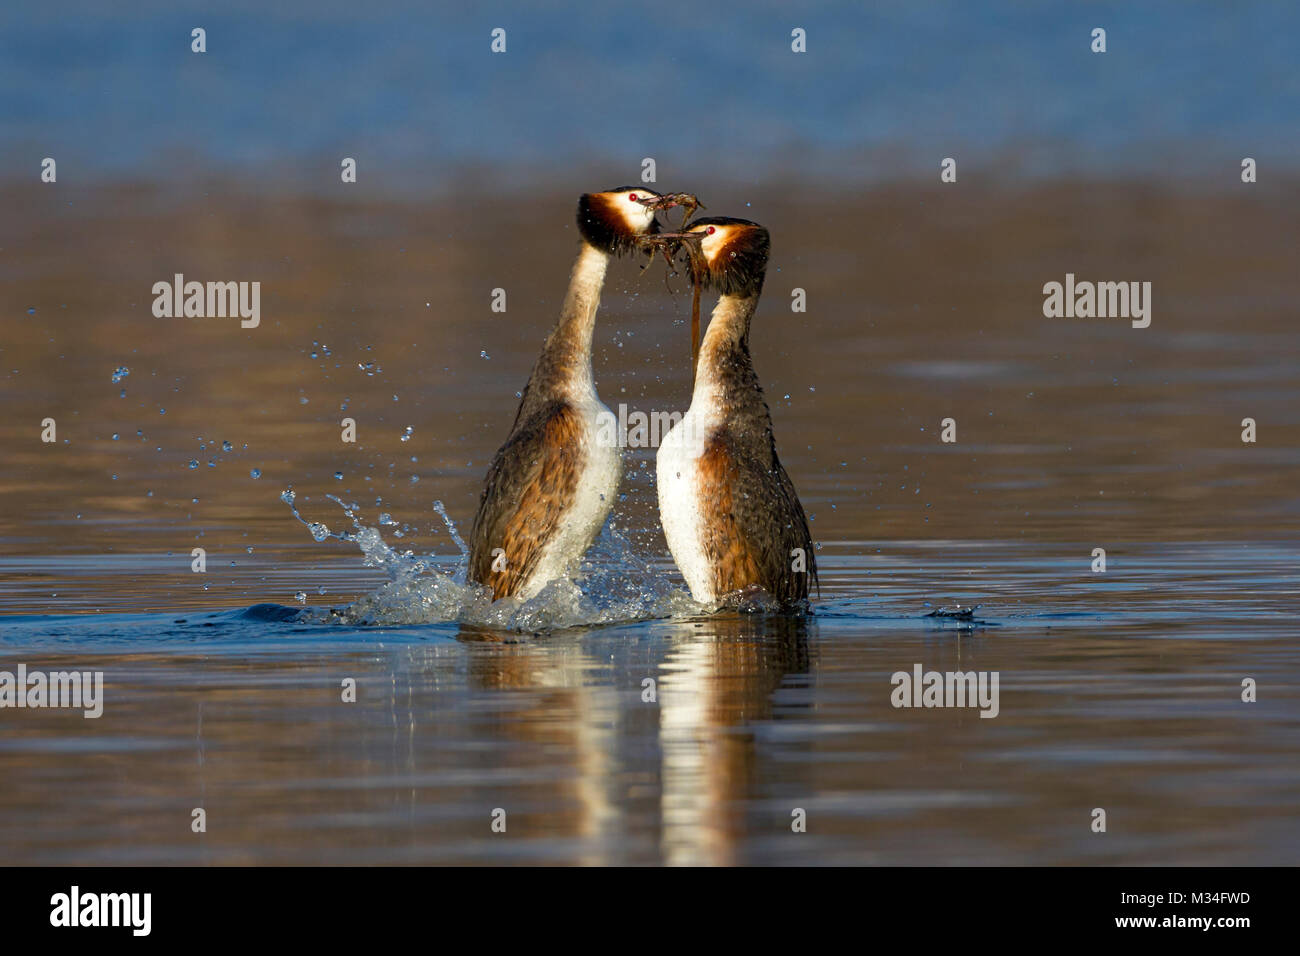 Greater grebes in bridal parade - Stock Image